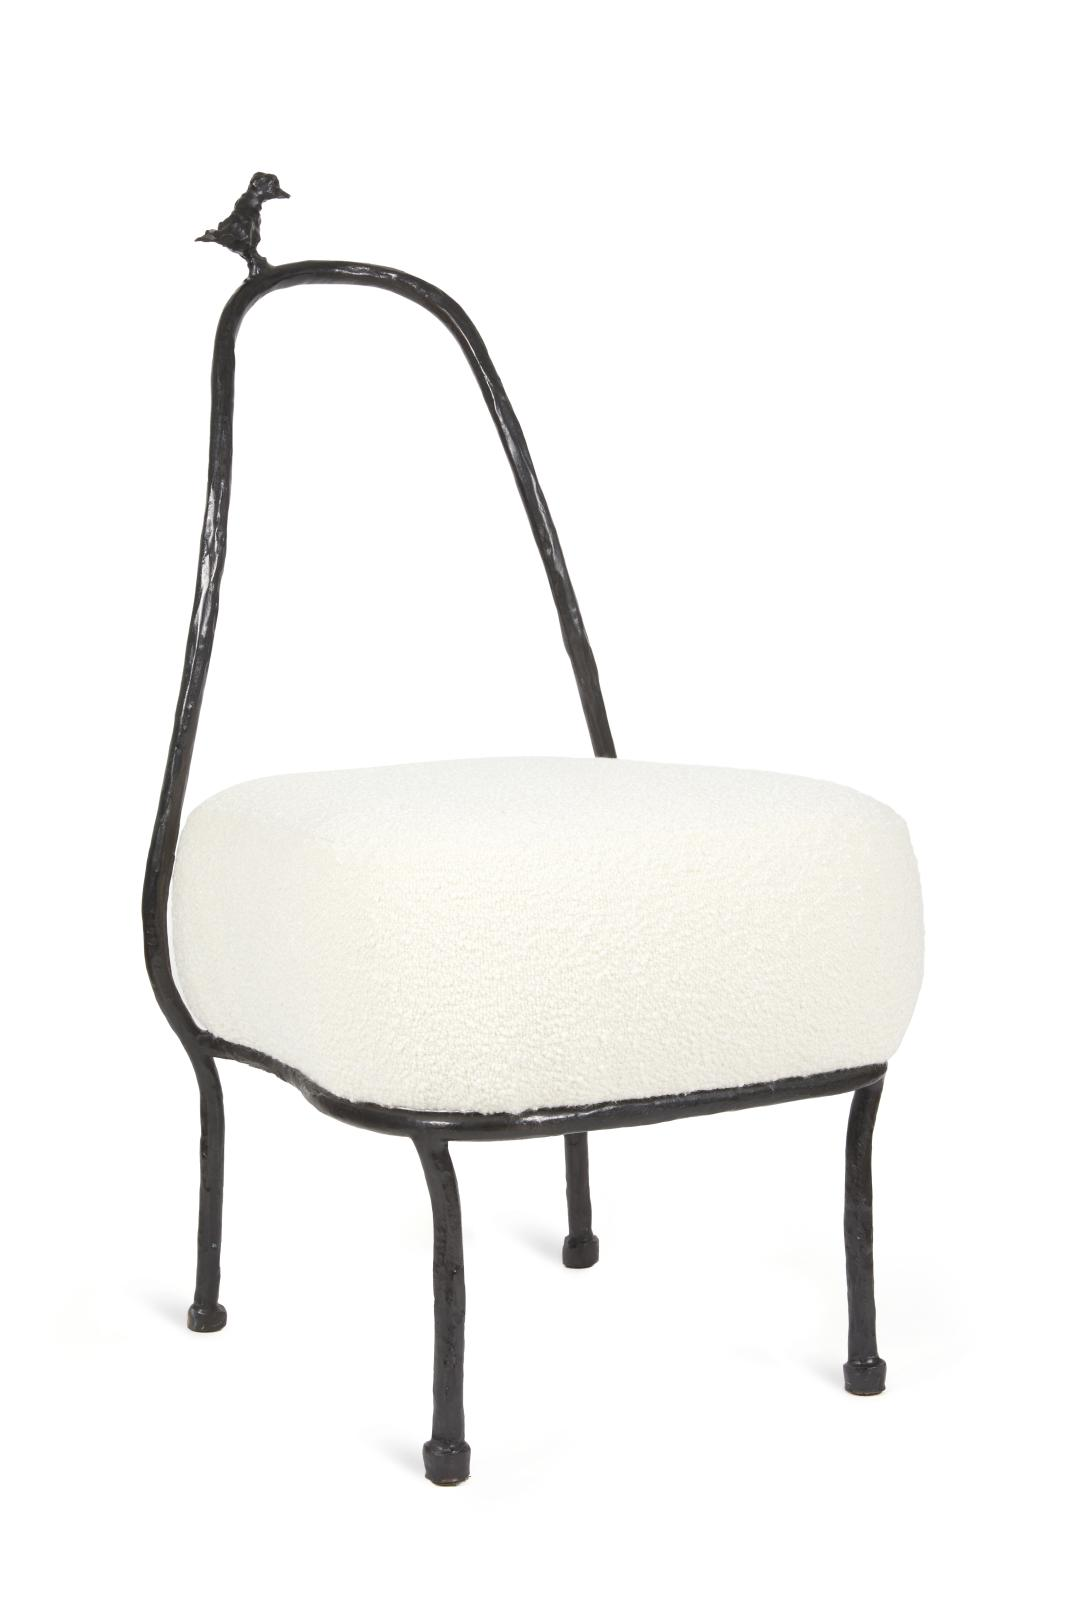 Eric Schmitt's Le Faucon maltais low chair, a new creation of which 30 copies were made.